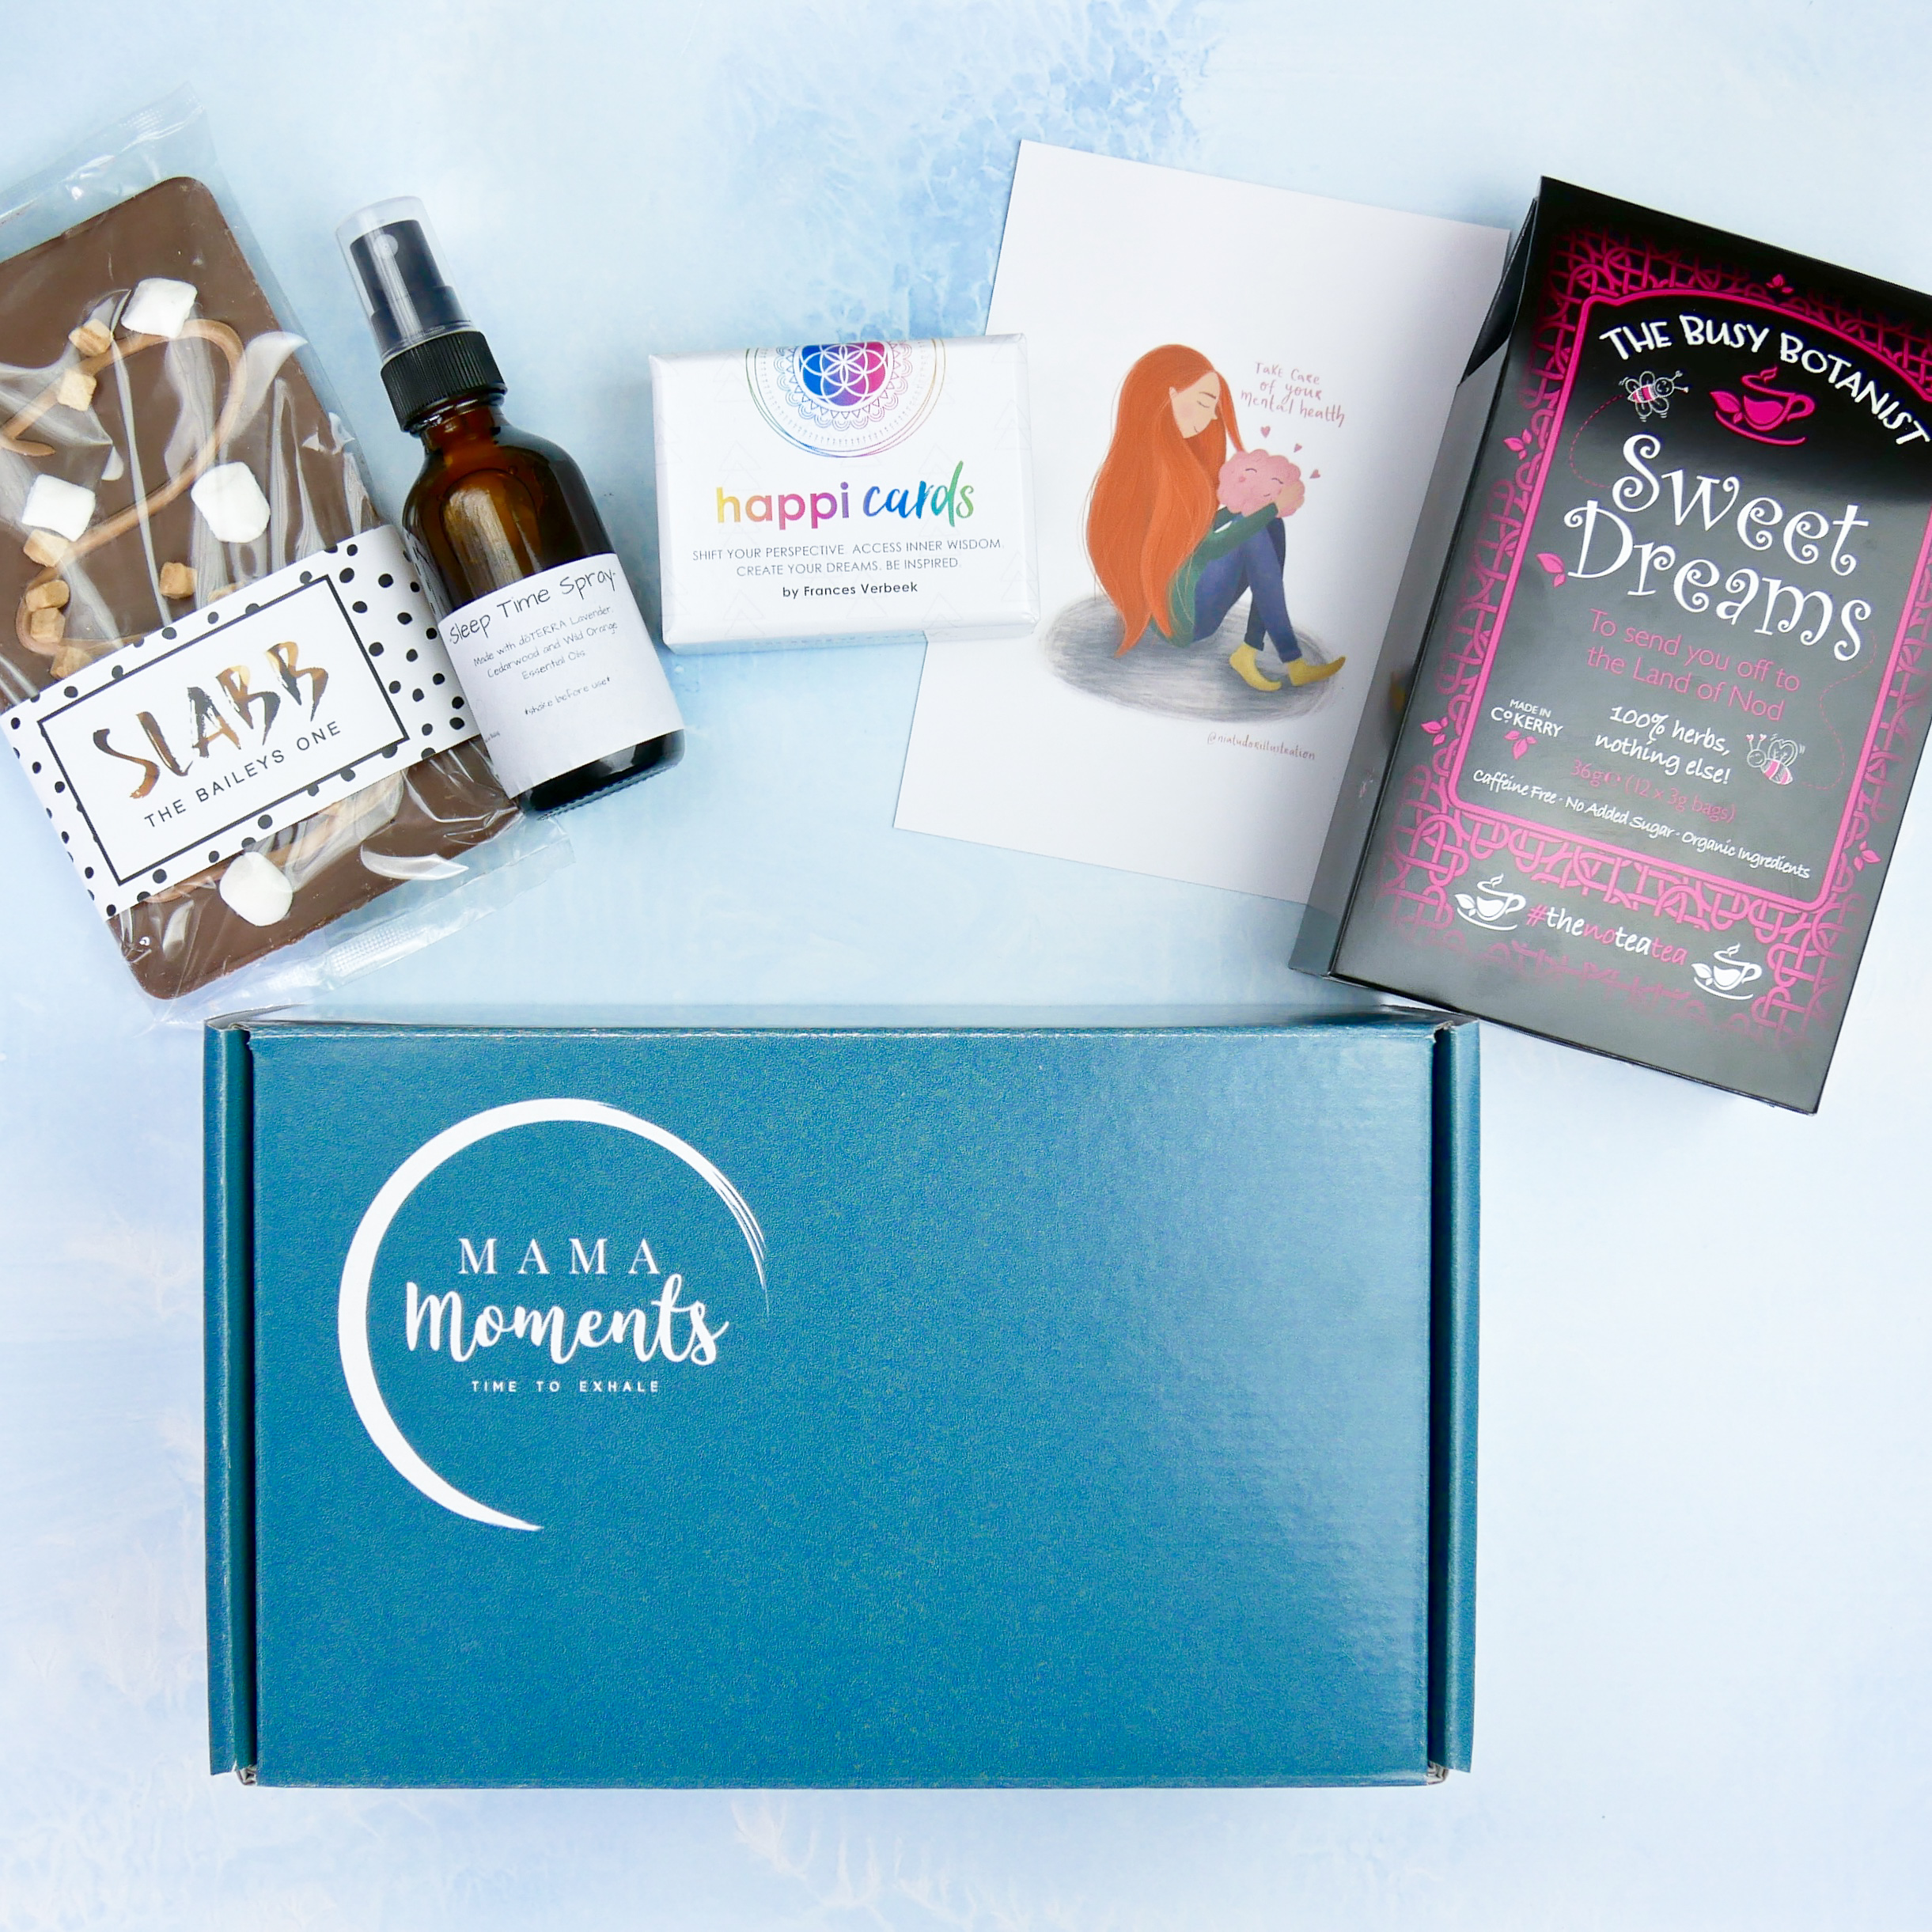 Mama Moments - Hug in a Box (one off box) - Spread.jpg